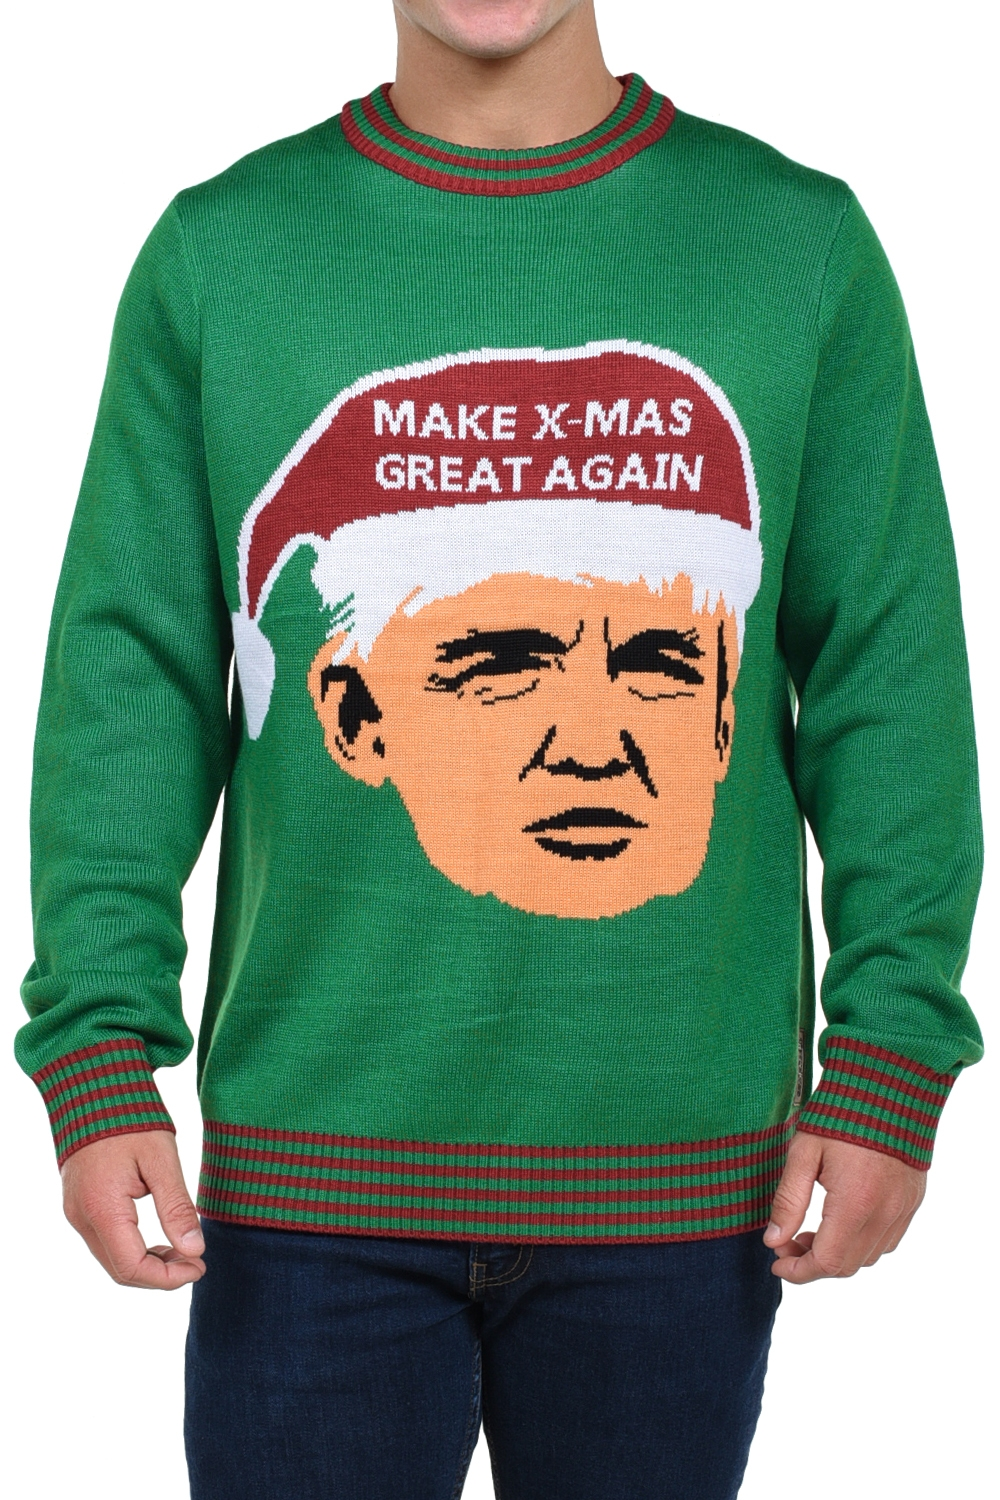 Make X-Mas Great Again Trump Christmas Sweater - PopCult Wear